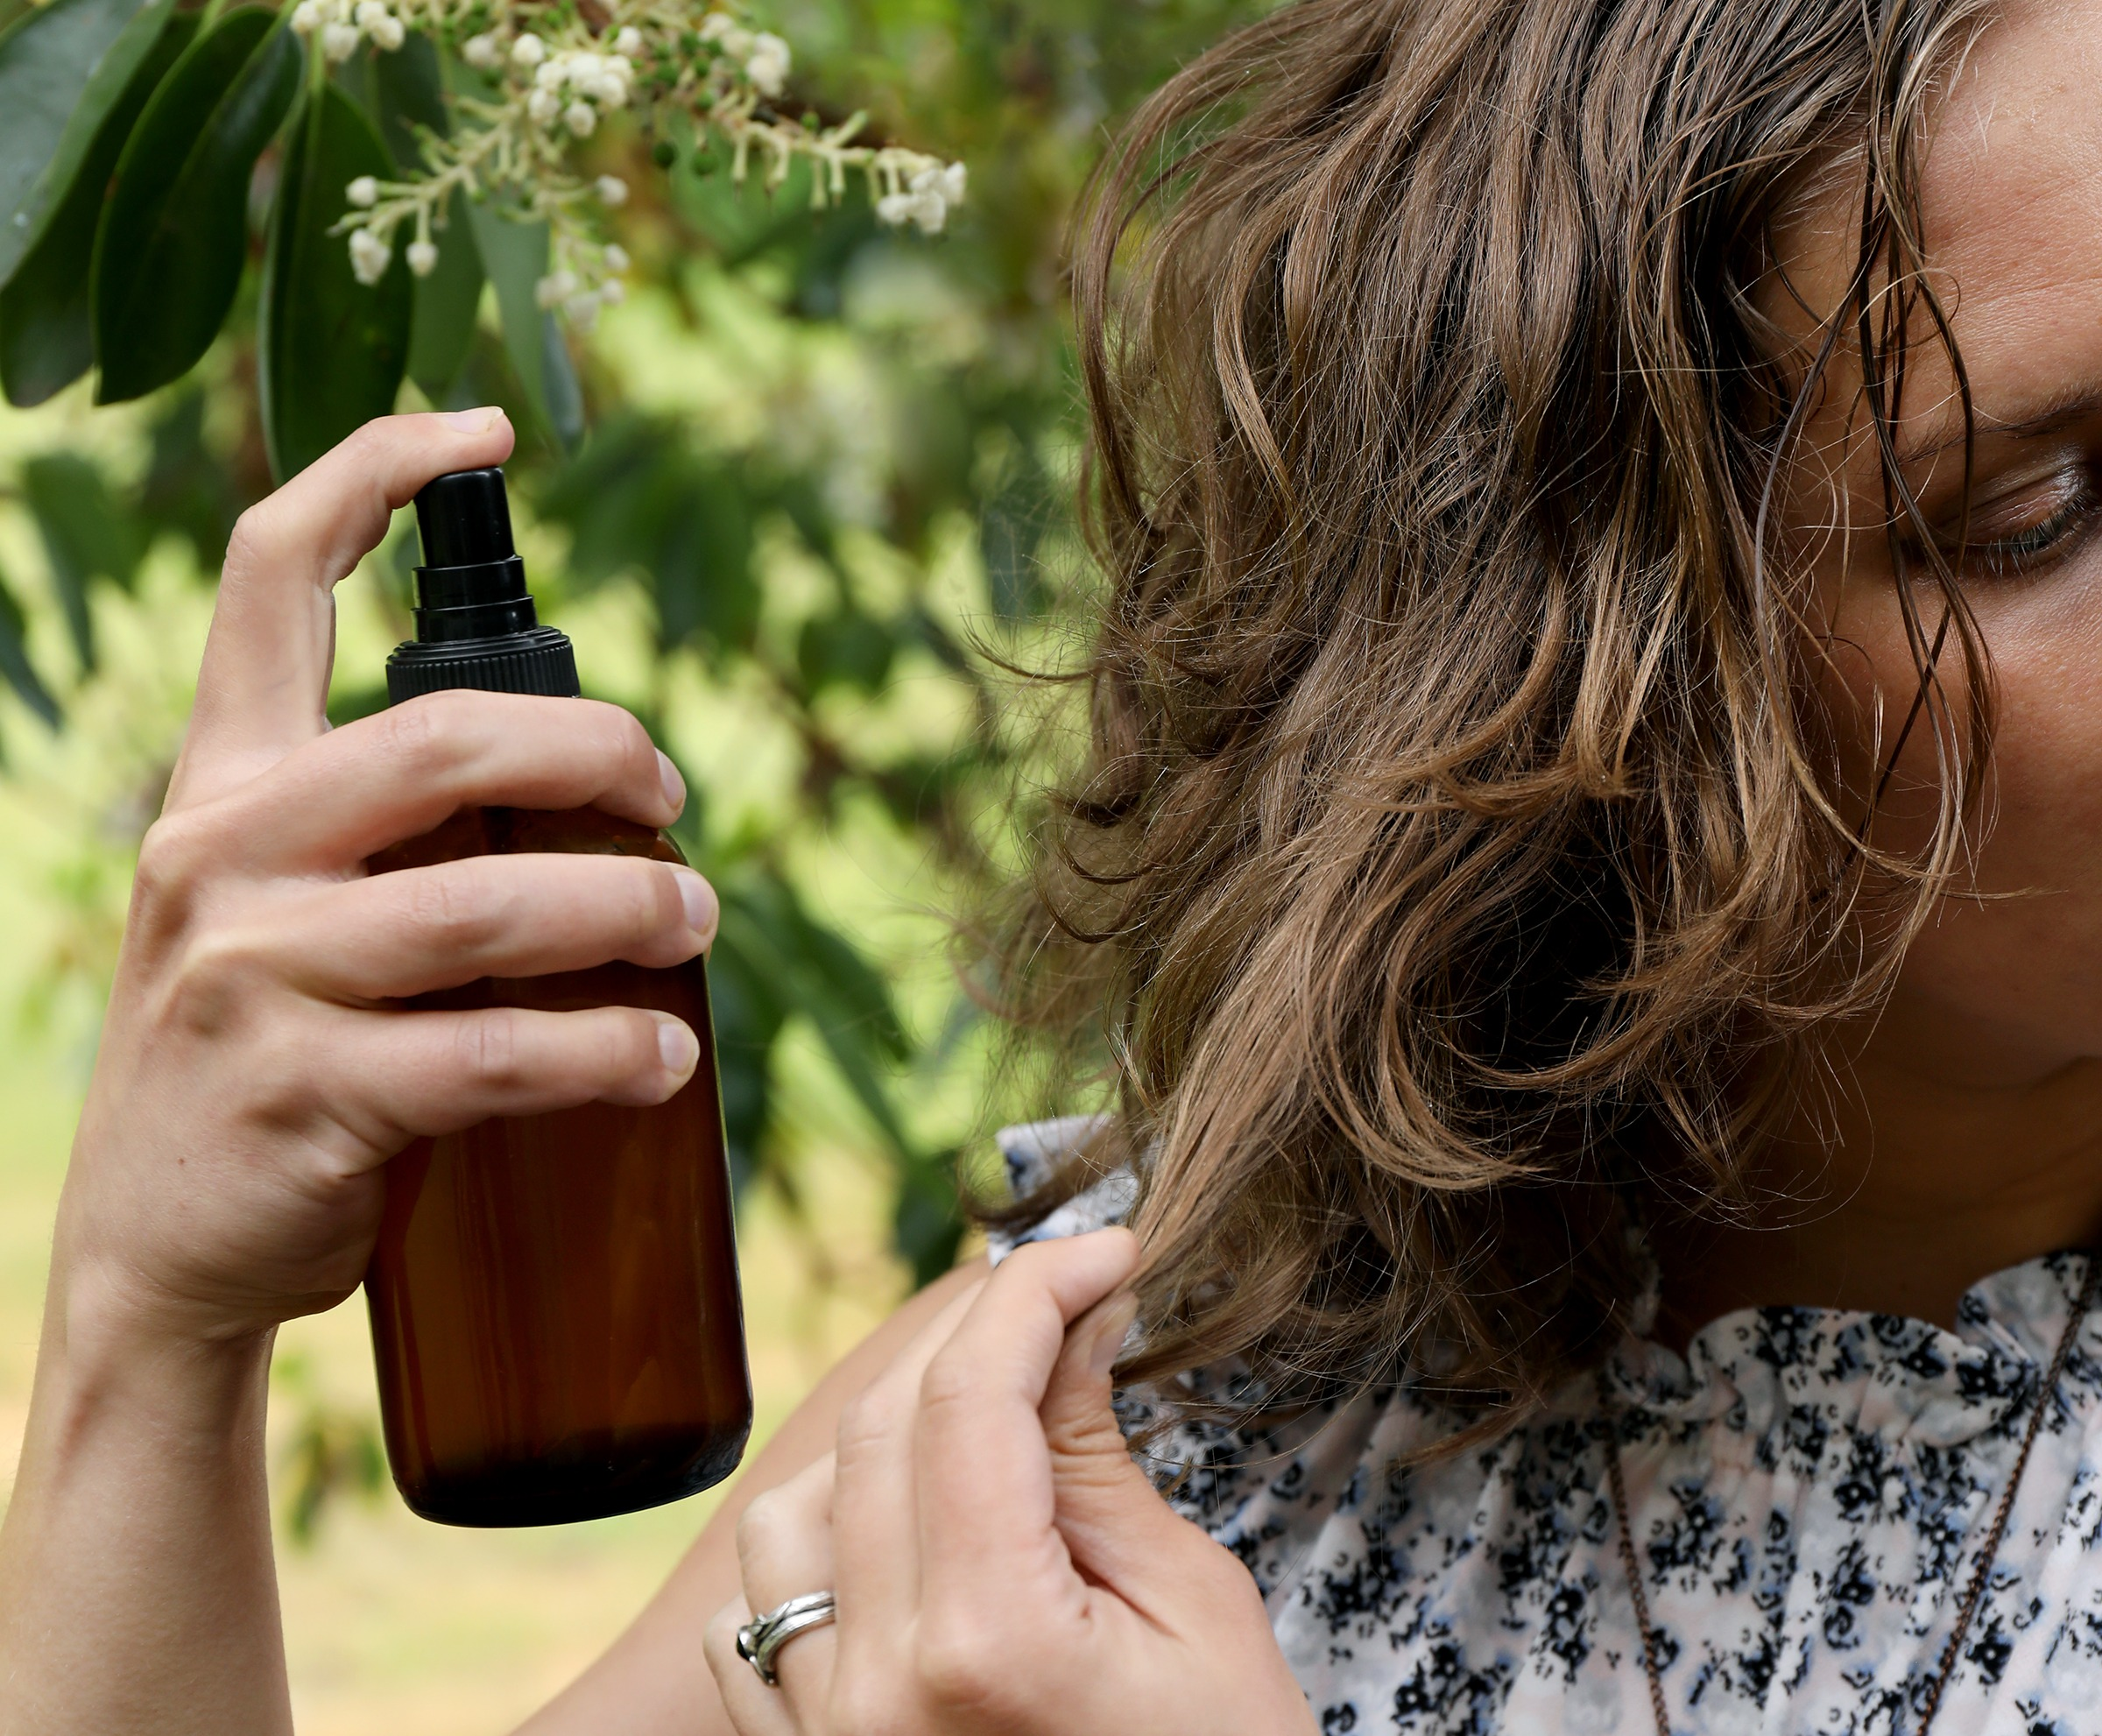 Homemade salt spray with essential oils and hydrosols for styling hair naturally.